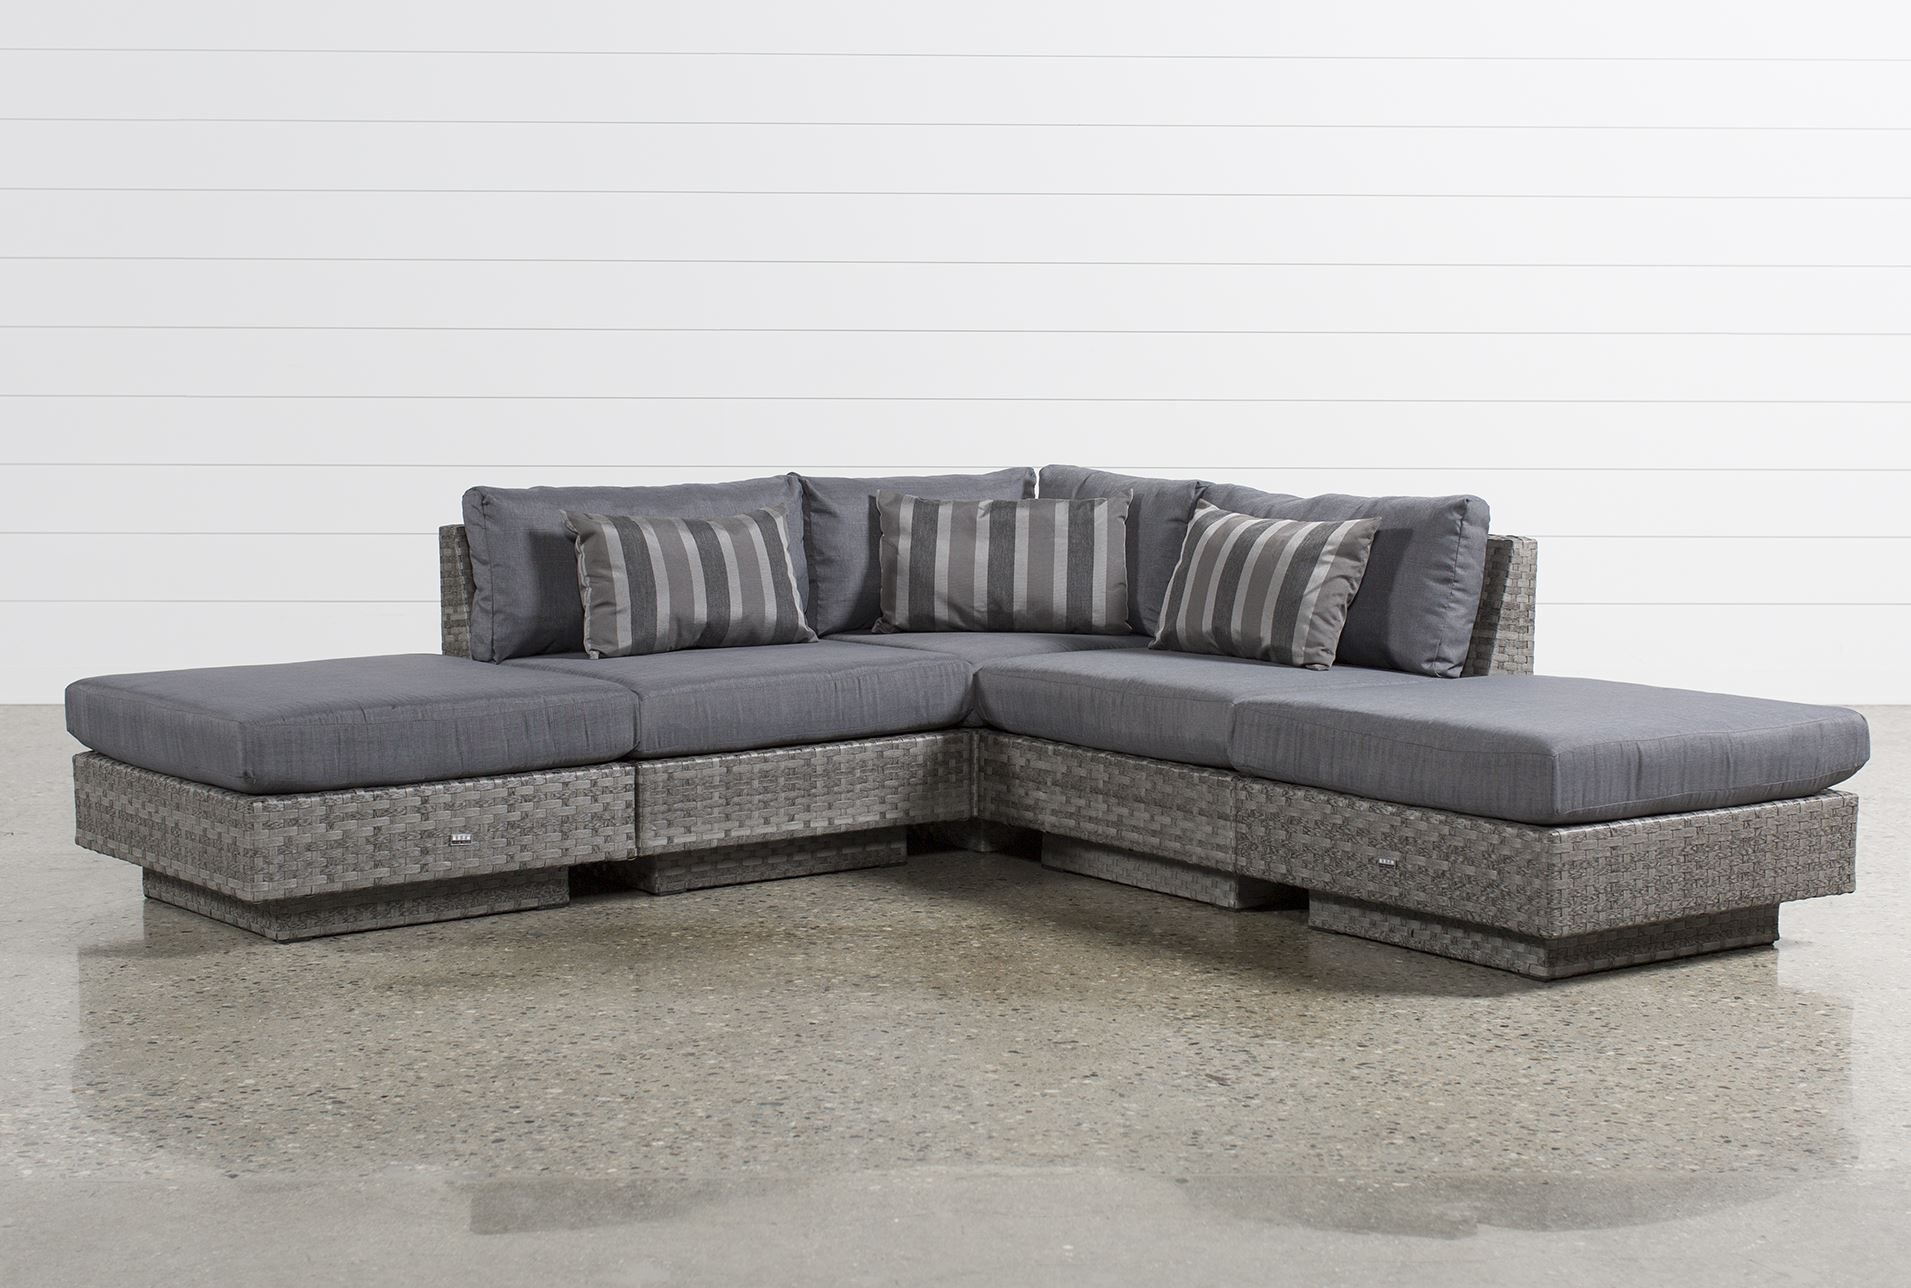 3 Piece Sectional Sofa Dimensions | Baci Living Room With Regard To Malbry Point 3 Piece Sectionals With Raf Chaise (View 18 of 25)